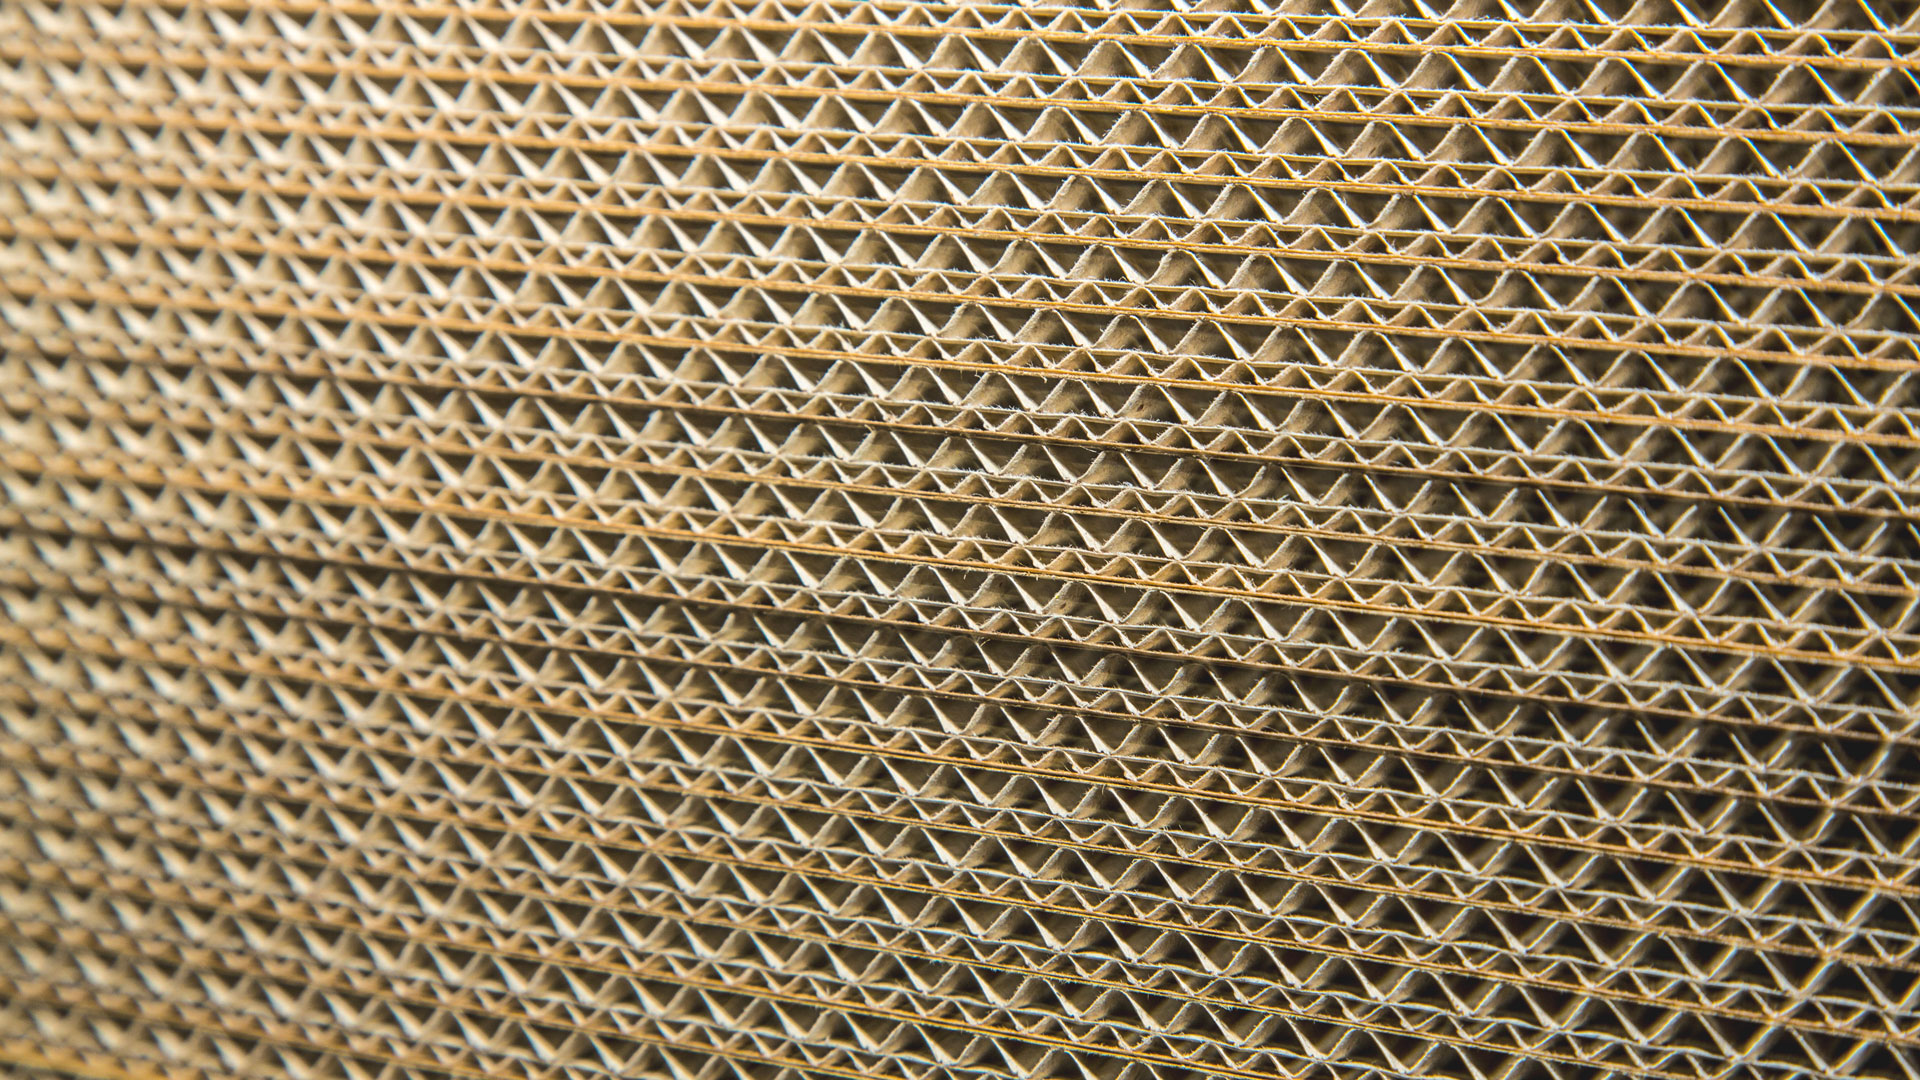 Corrugated board close up display